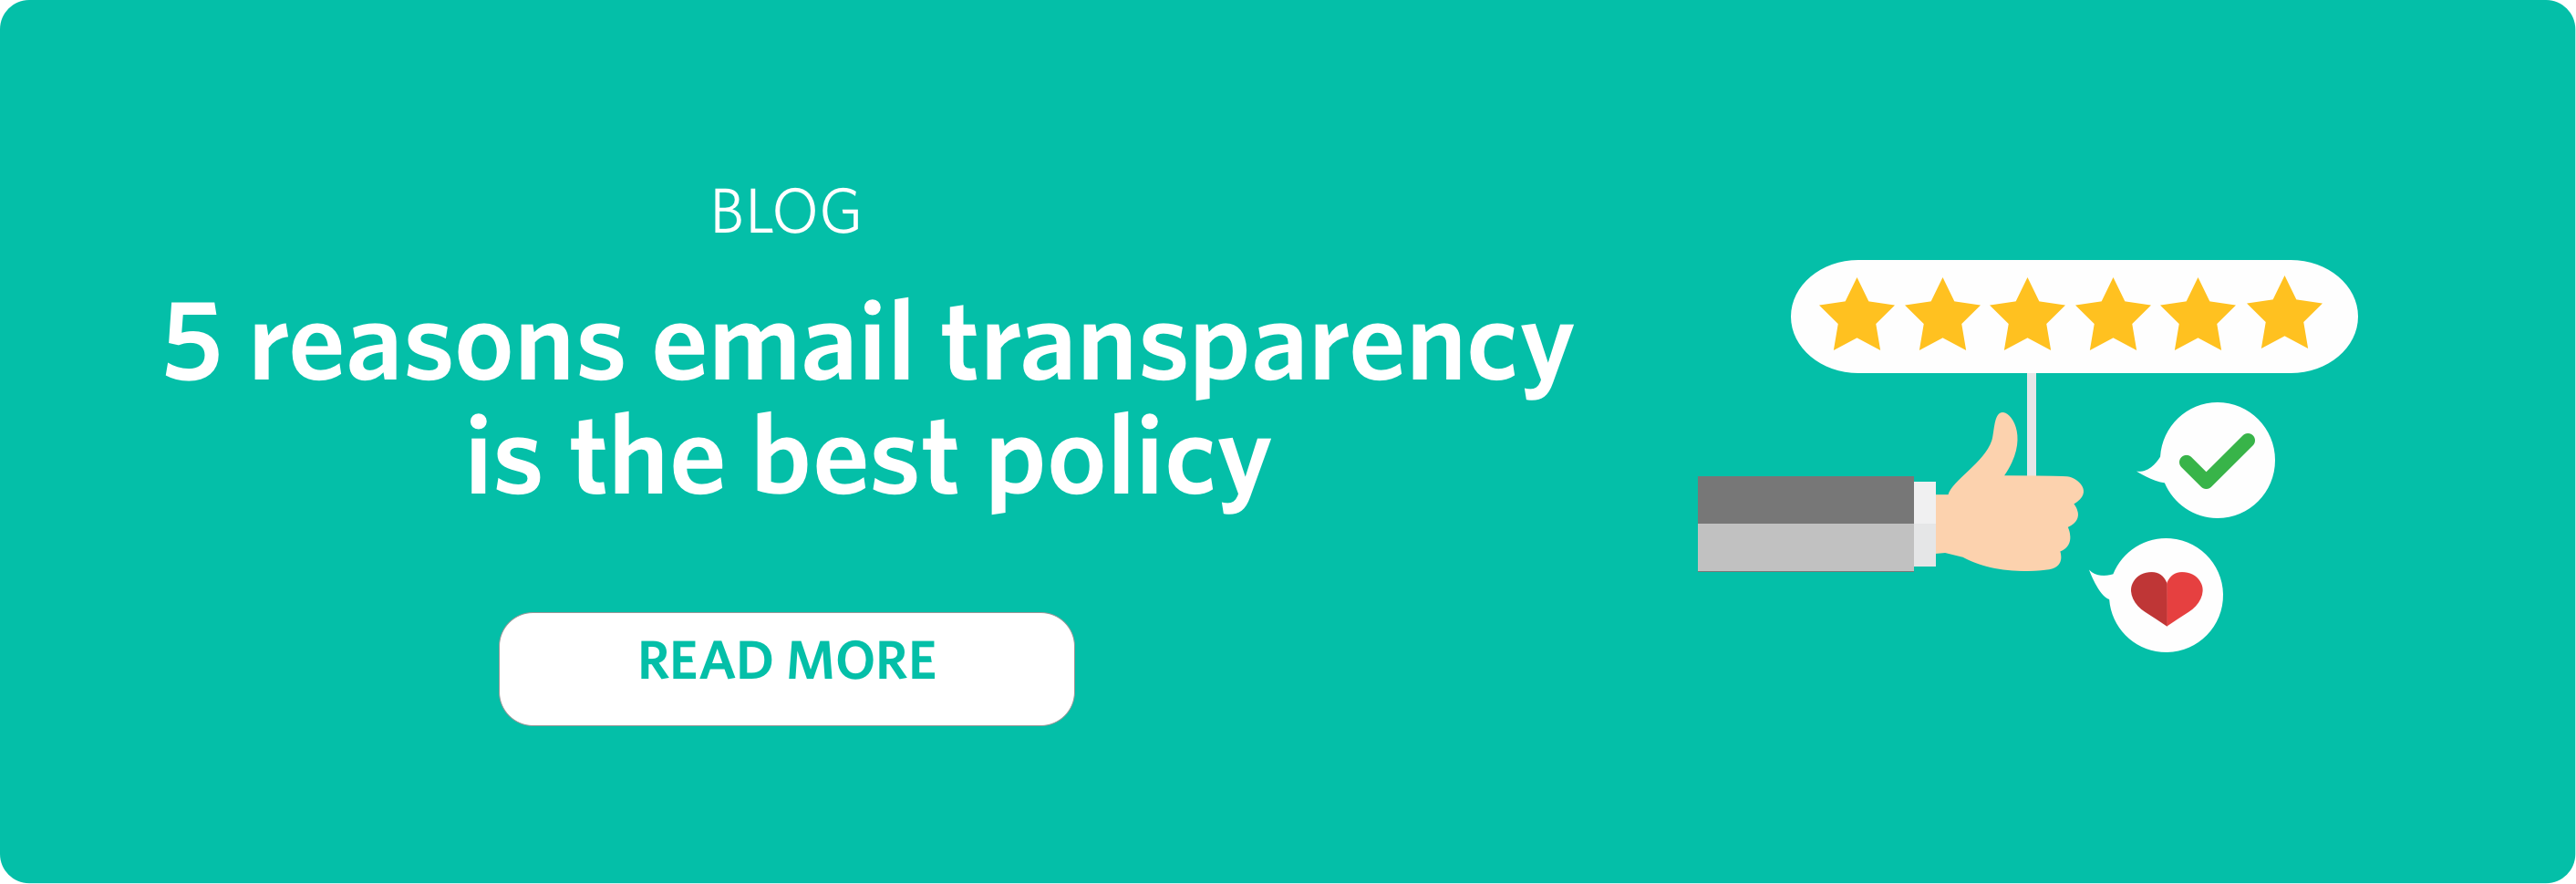 email transparency